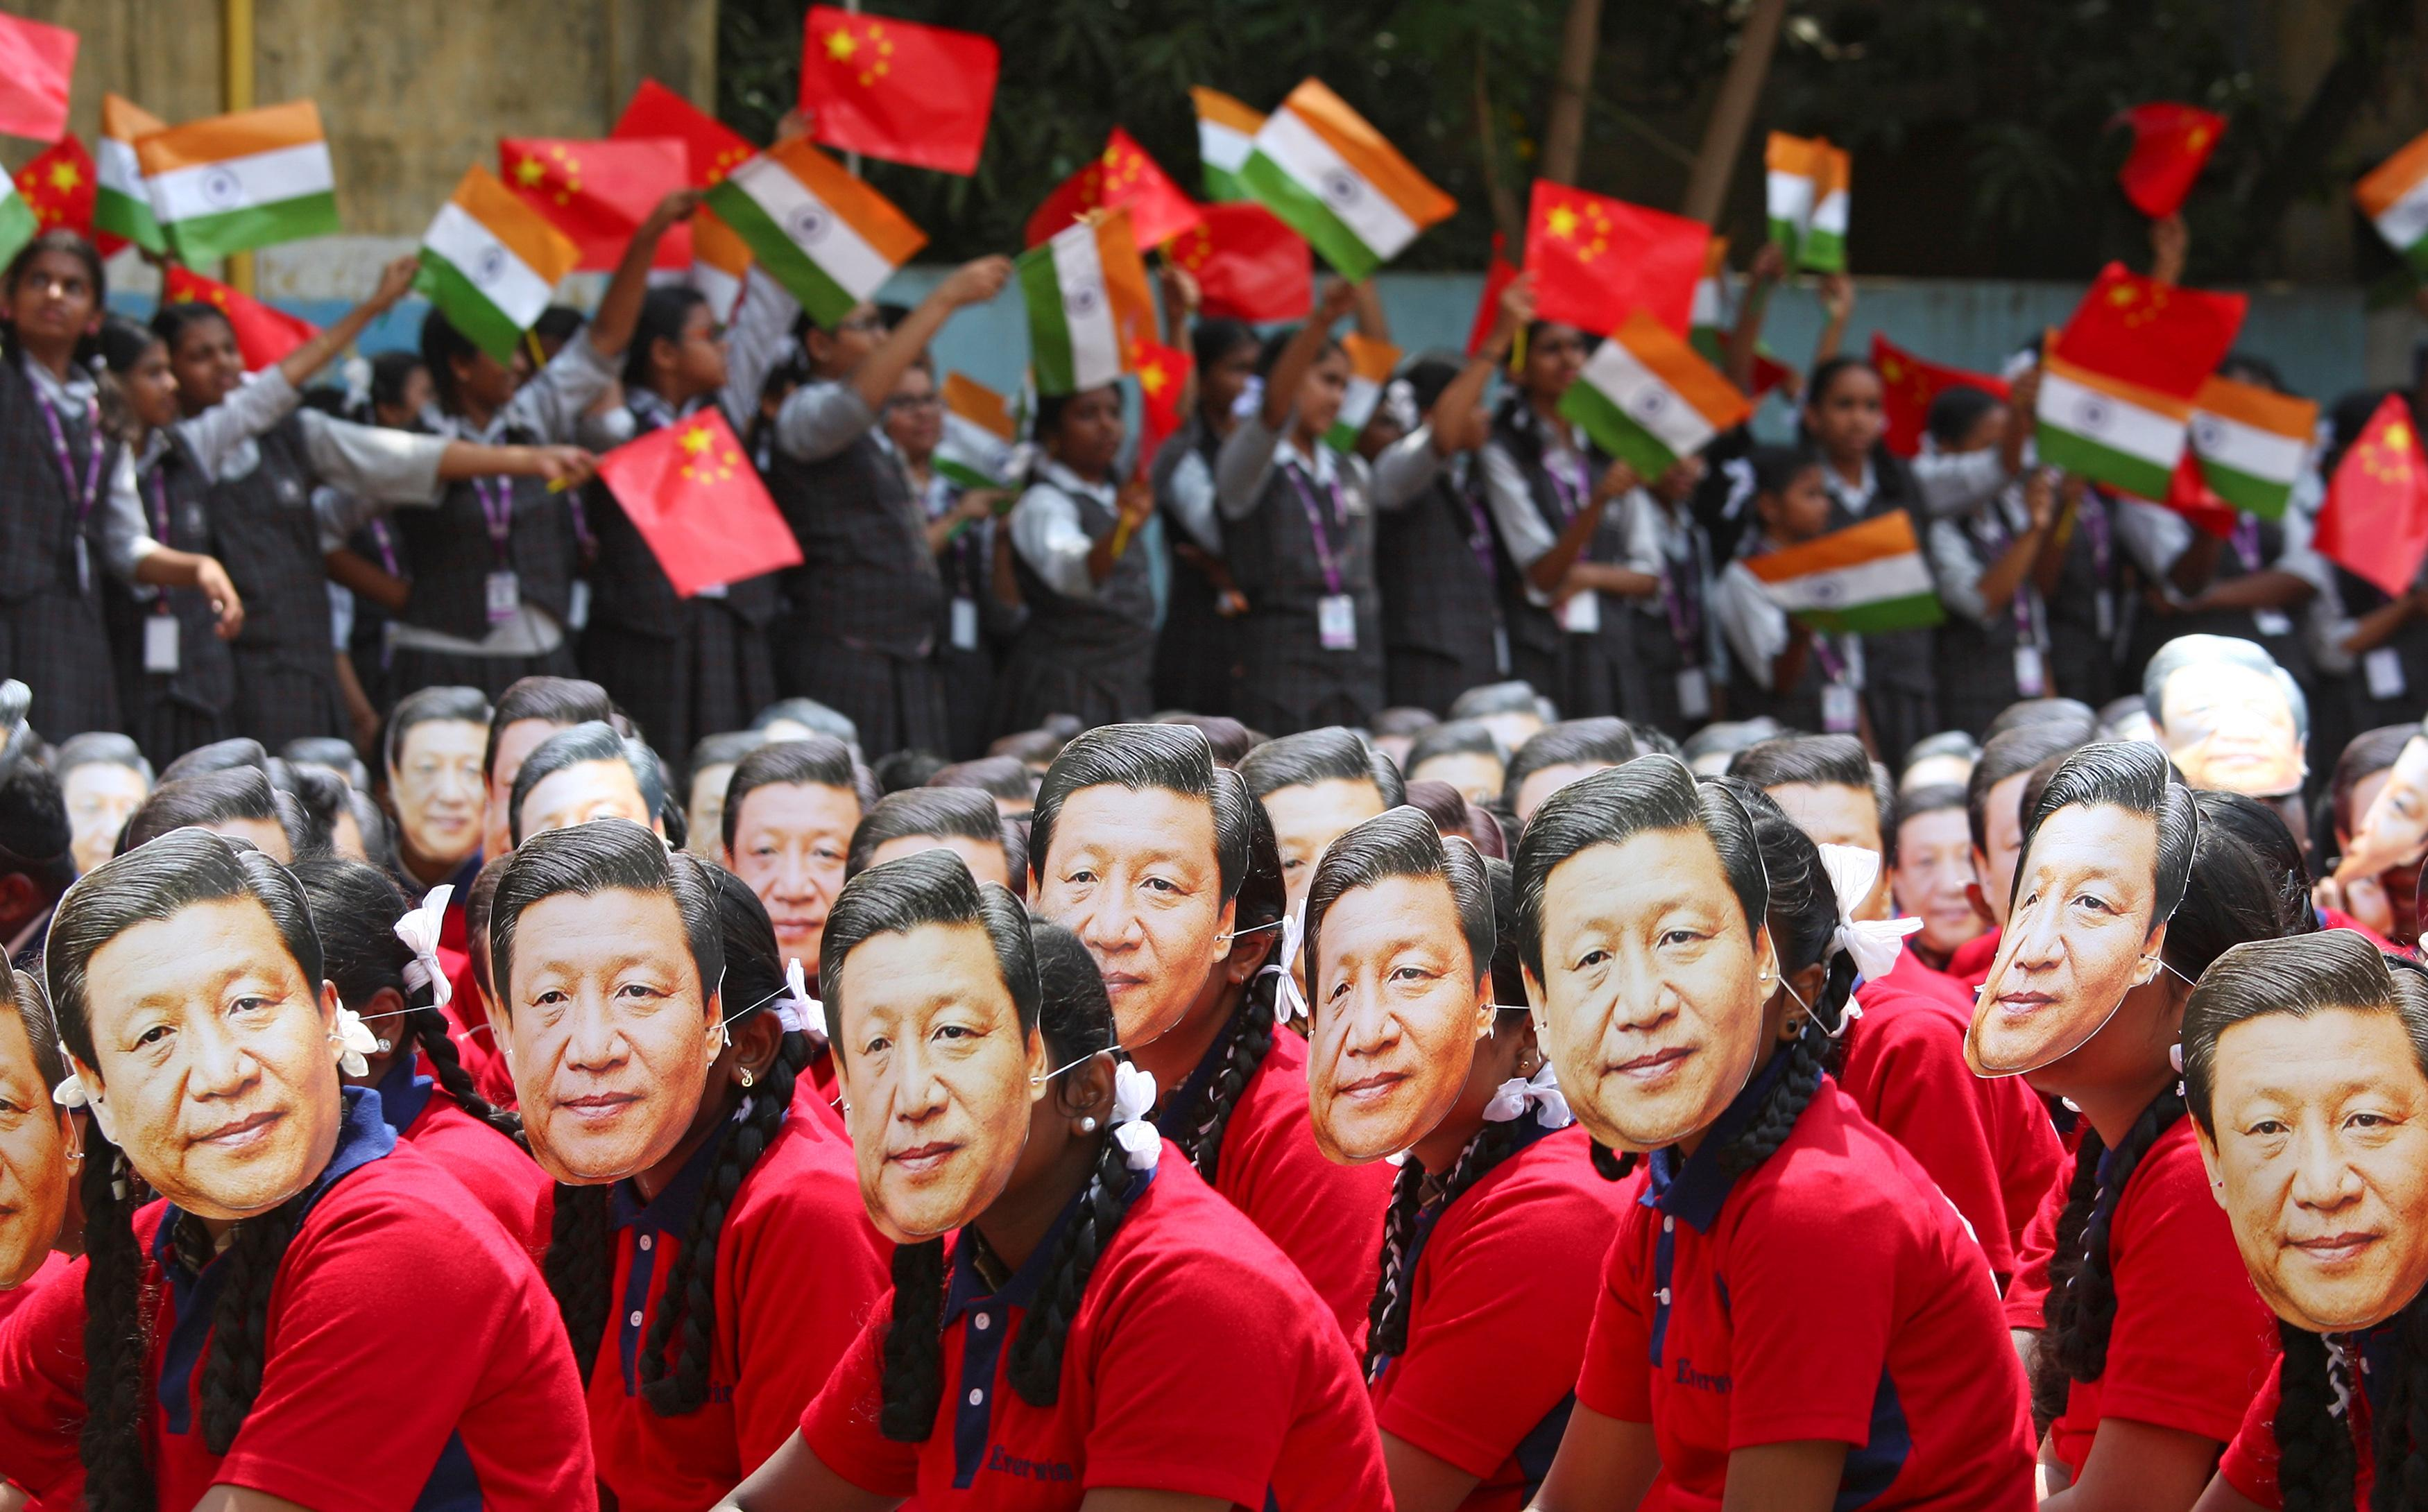 India's Modi to host China's Xi at summit with ties strained by...